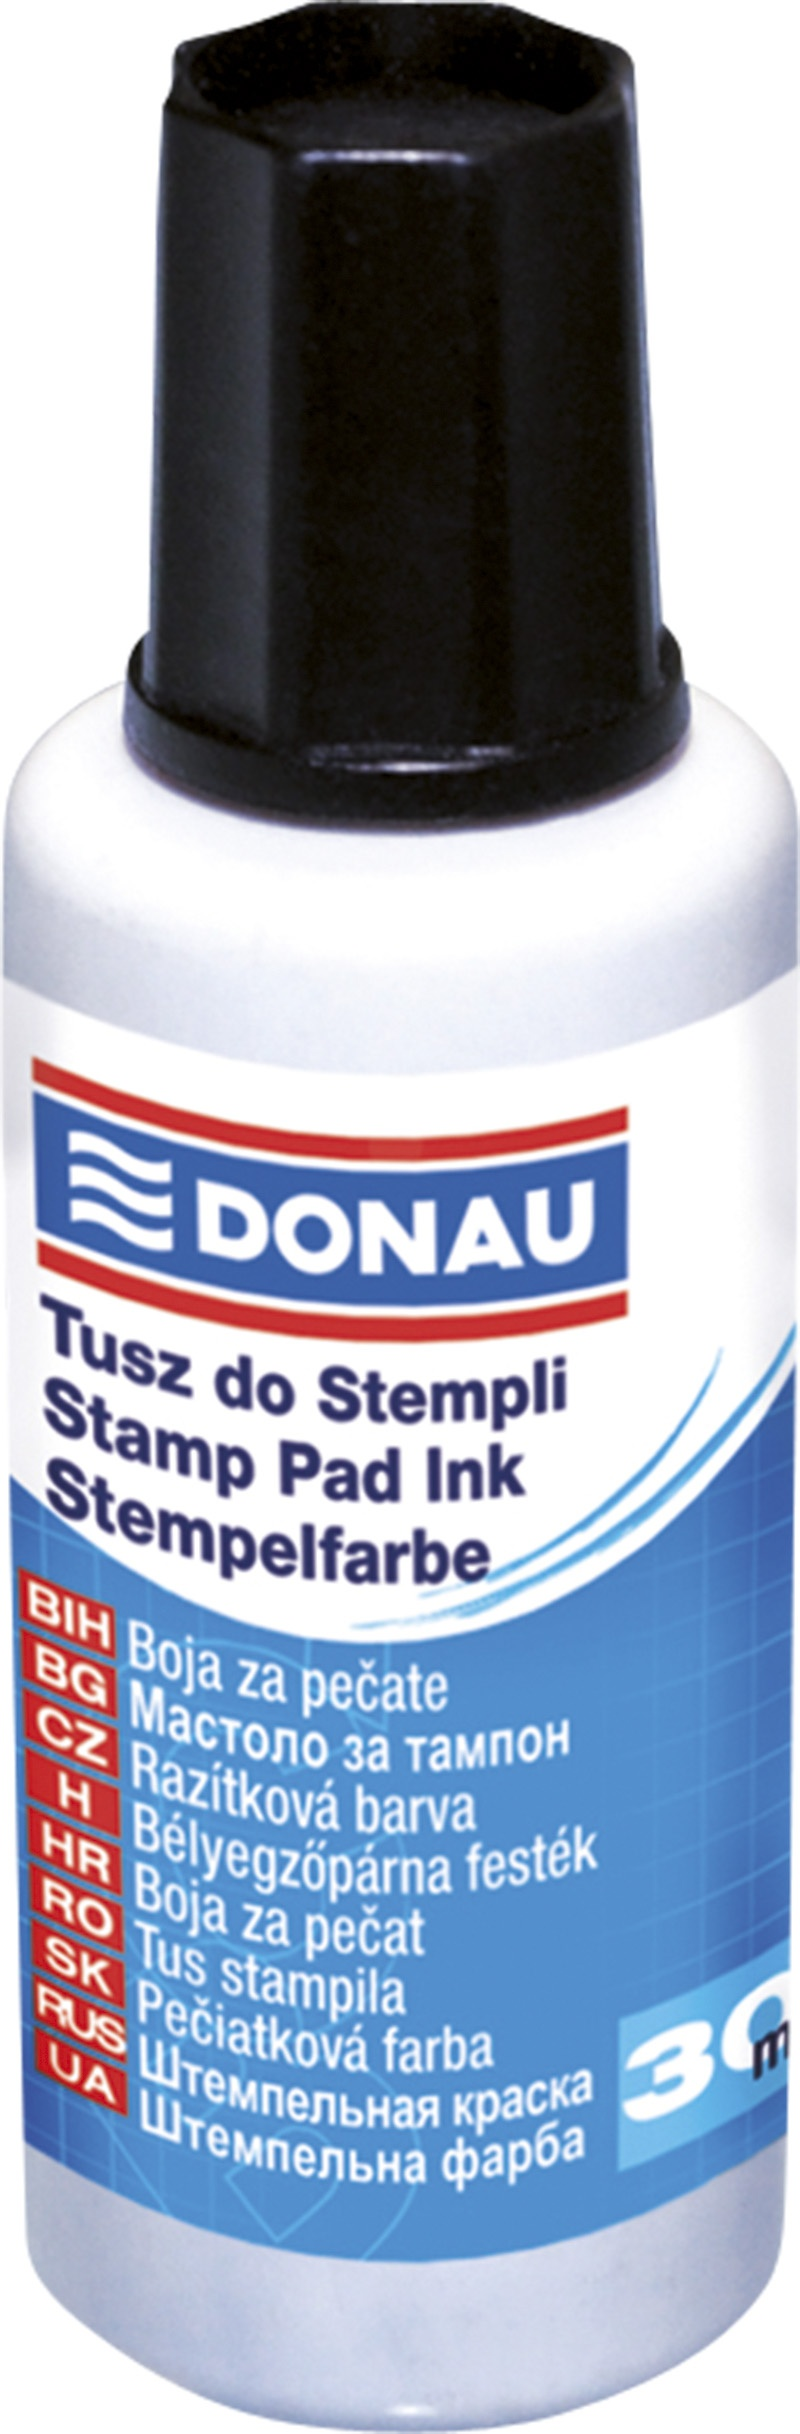 Stamp Ink DONAU, 30ml, black